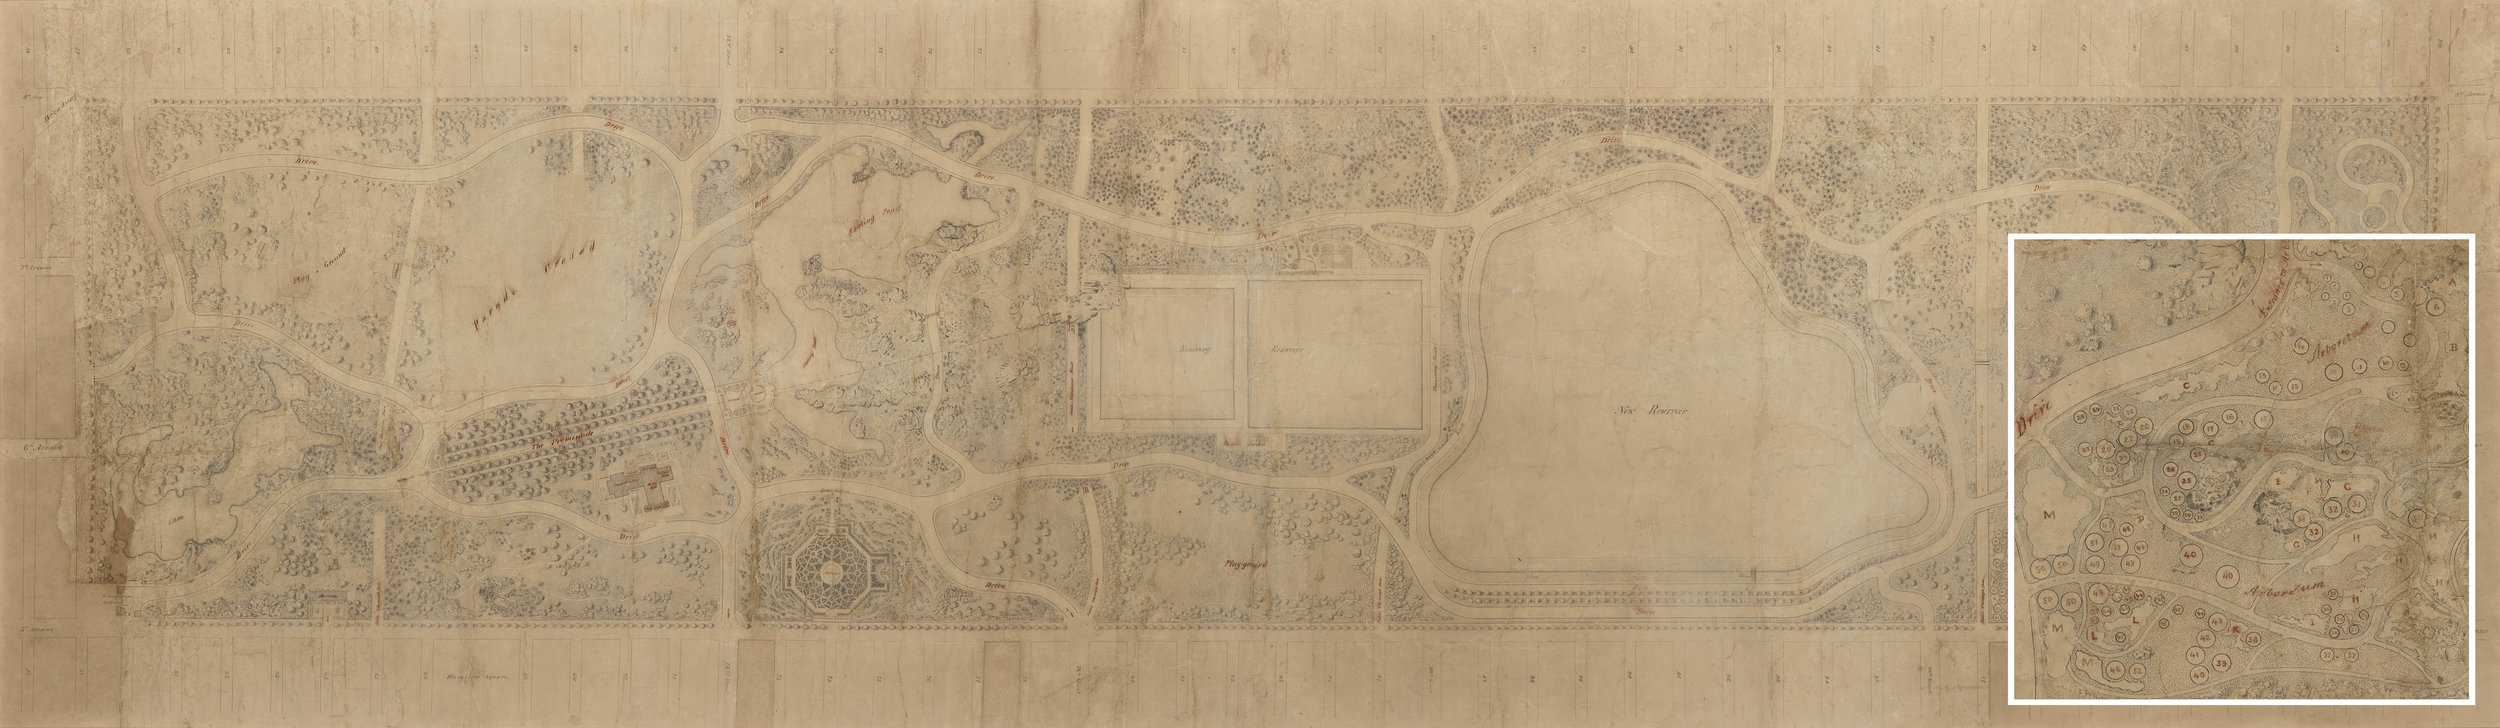 The Greensward Plan with magnified section.The northeast corner of the park was originally designed as an arboretum highlighting American trees and shrubs. Some items included in the plan, like the formal garden left of center, were requirements of the design competition, but not the style of Olmstead and Vaux. They were excluded from the final plans.